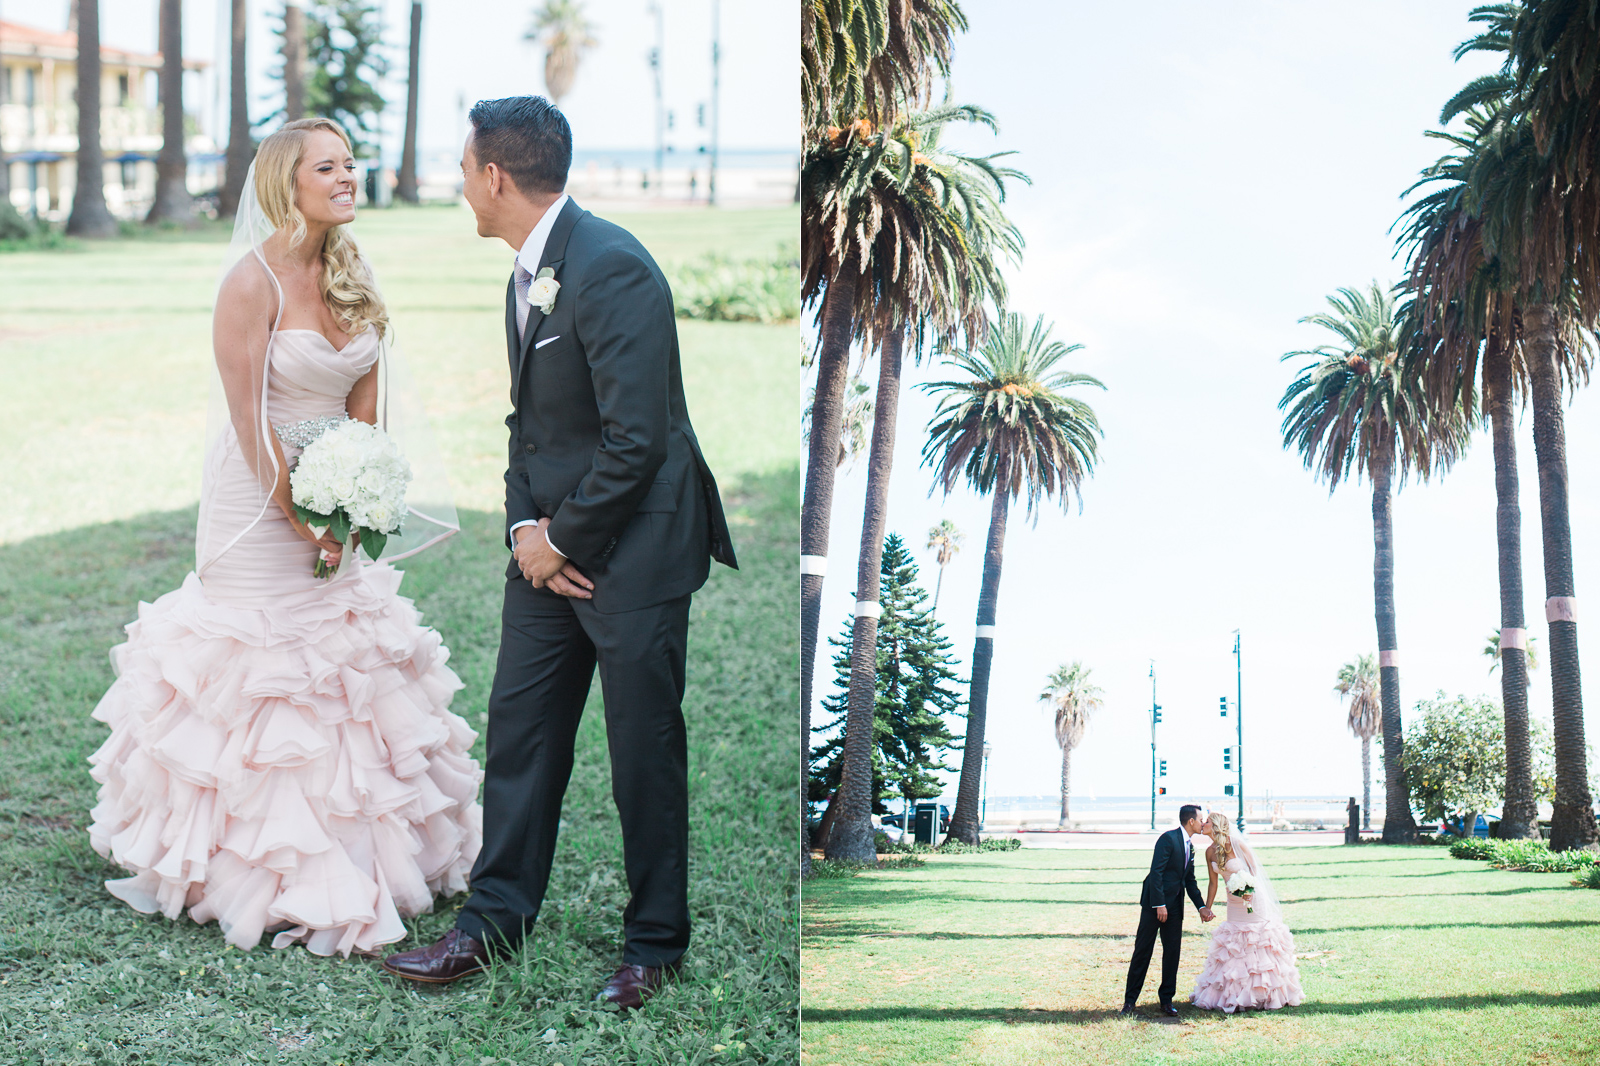 First look before their wedding at Alice Keck Park